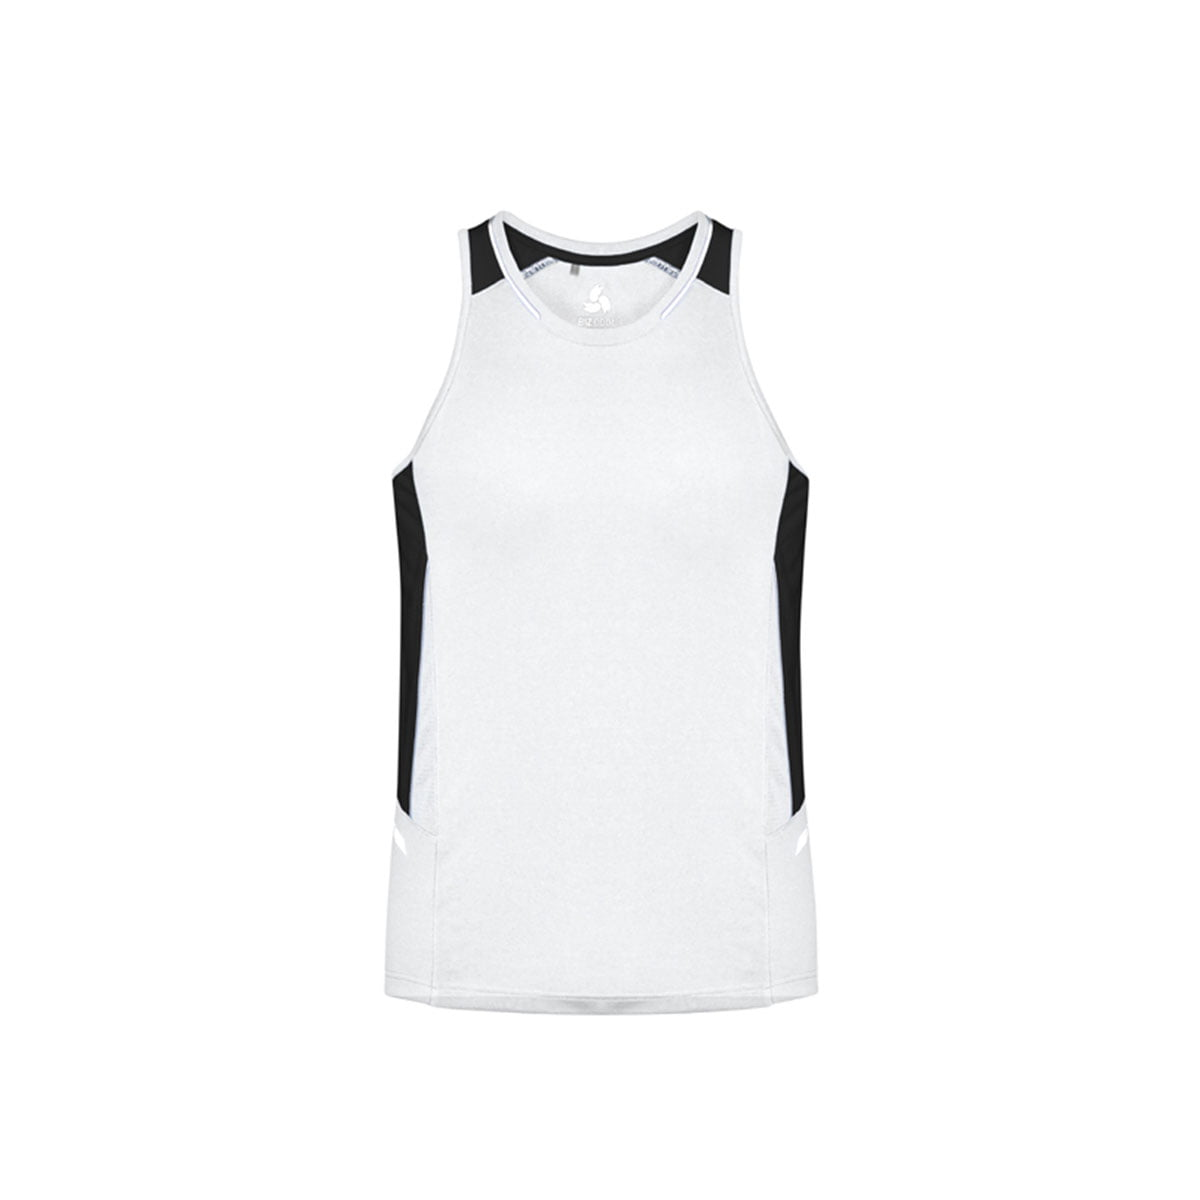 Mens Renegade Singlet-White / Black / Silver